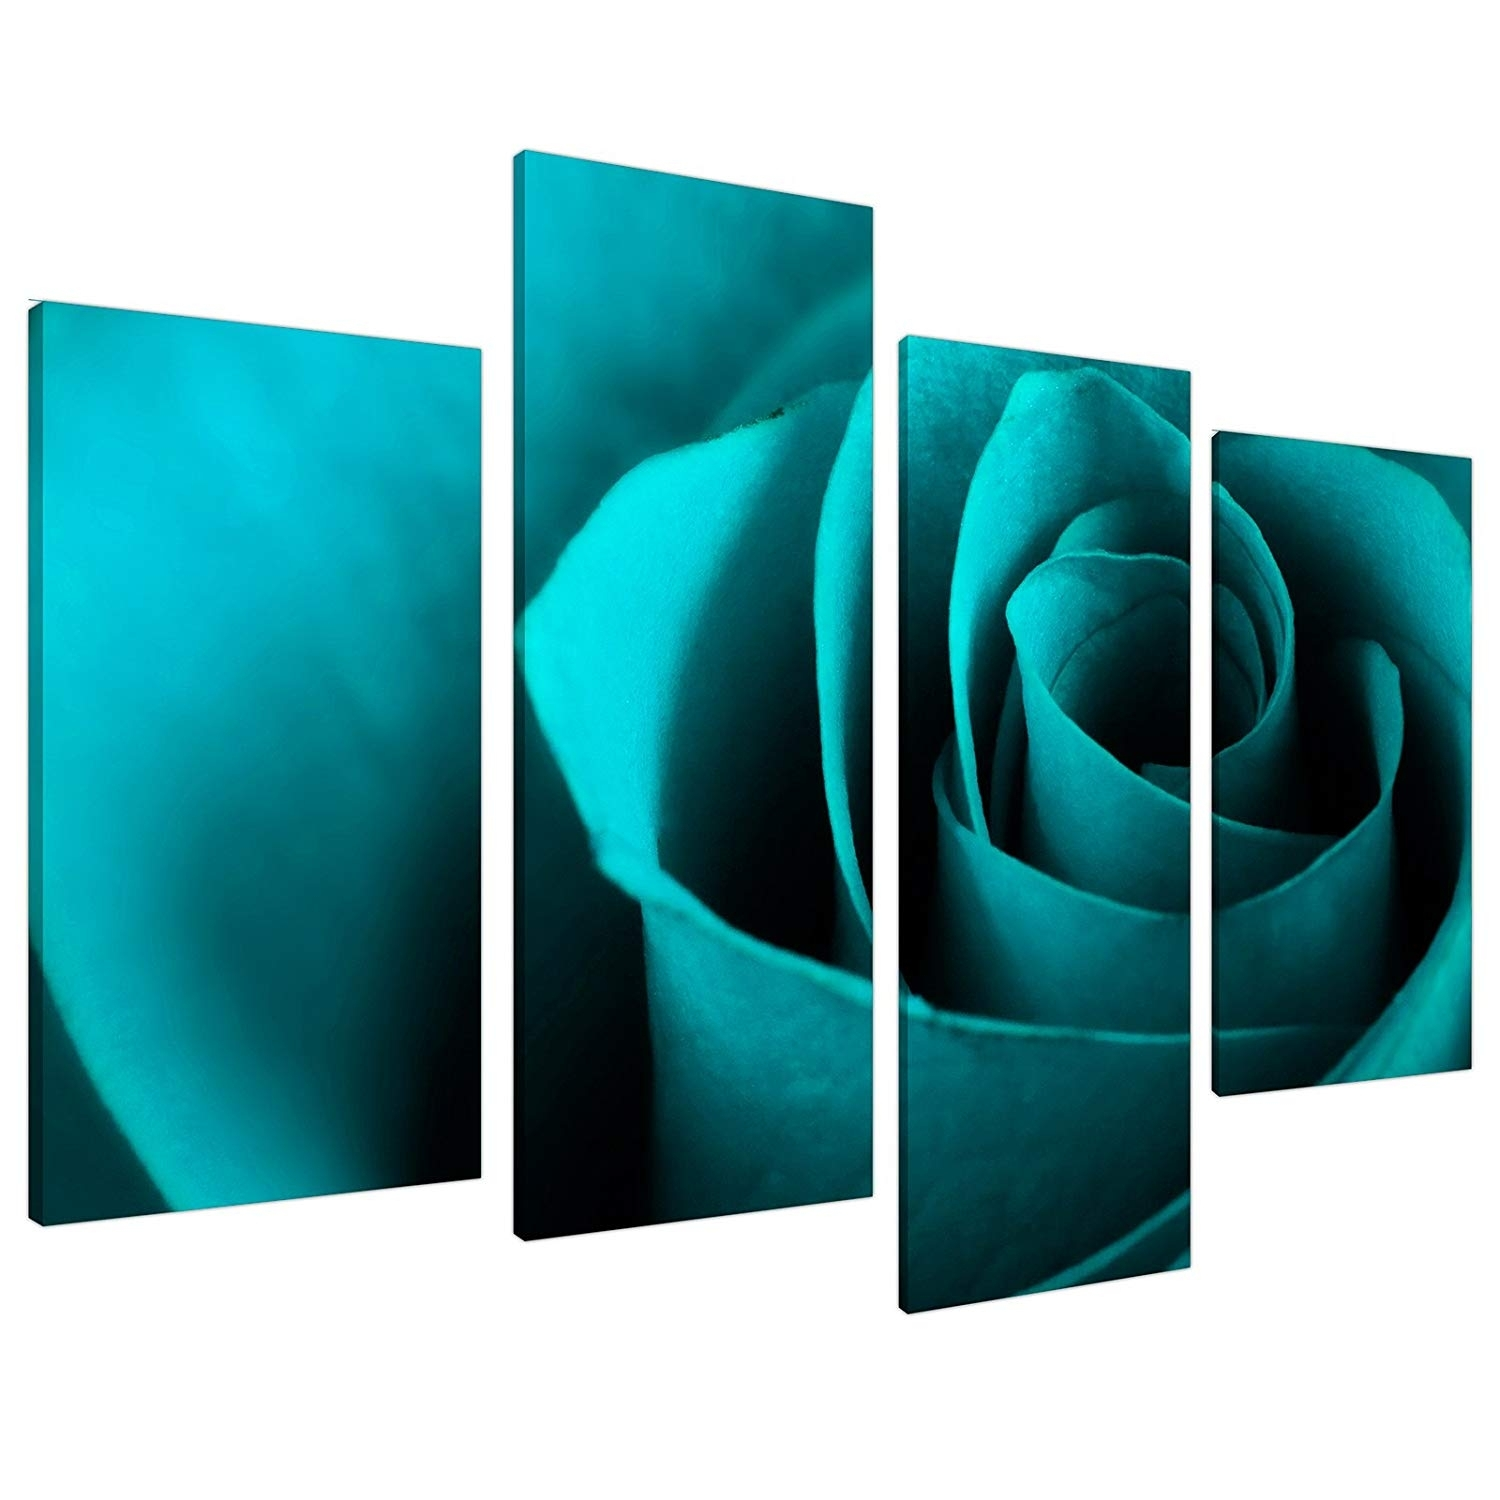 Large Teal Turquoise Floral Canvas Wall Art Pictures Xl Prints 4109 within Teal Wall Art (Image 10 of 20)